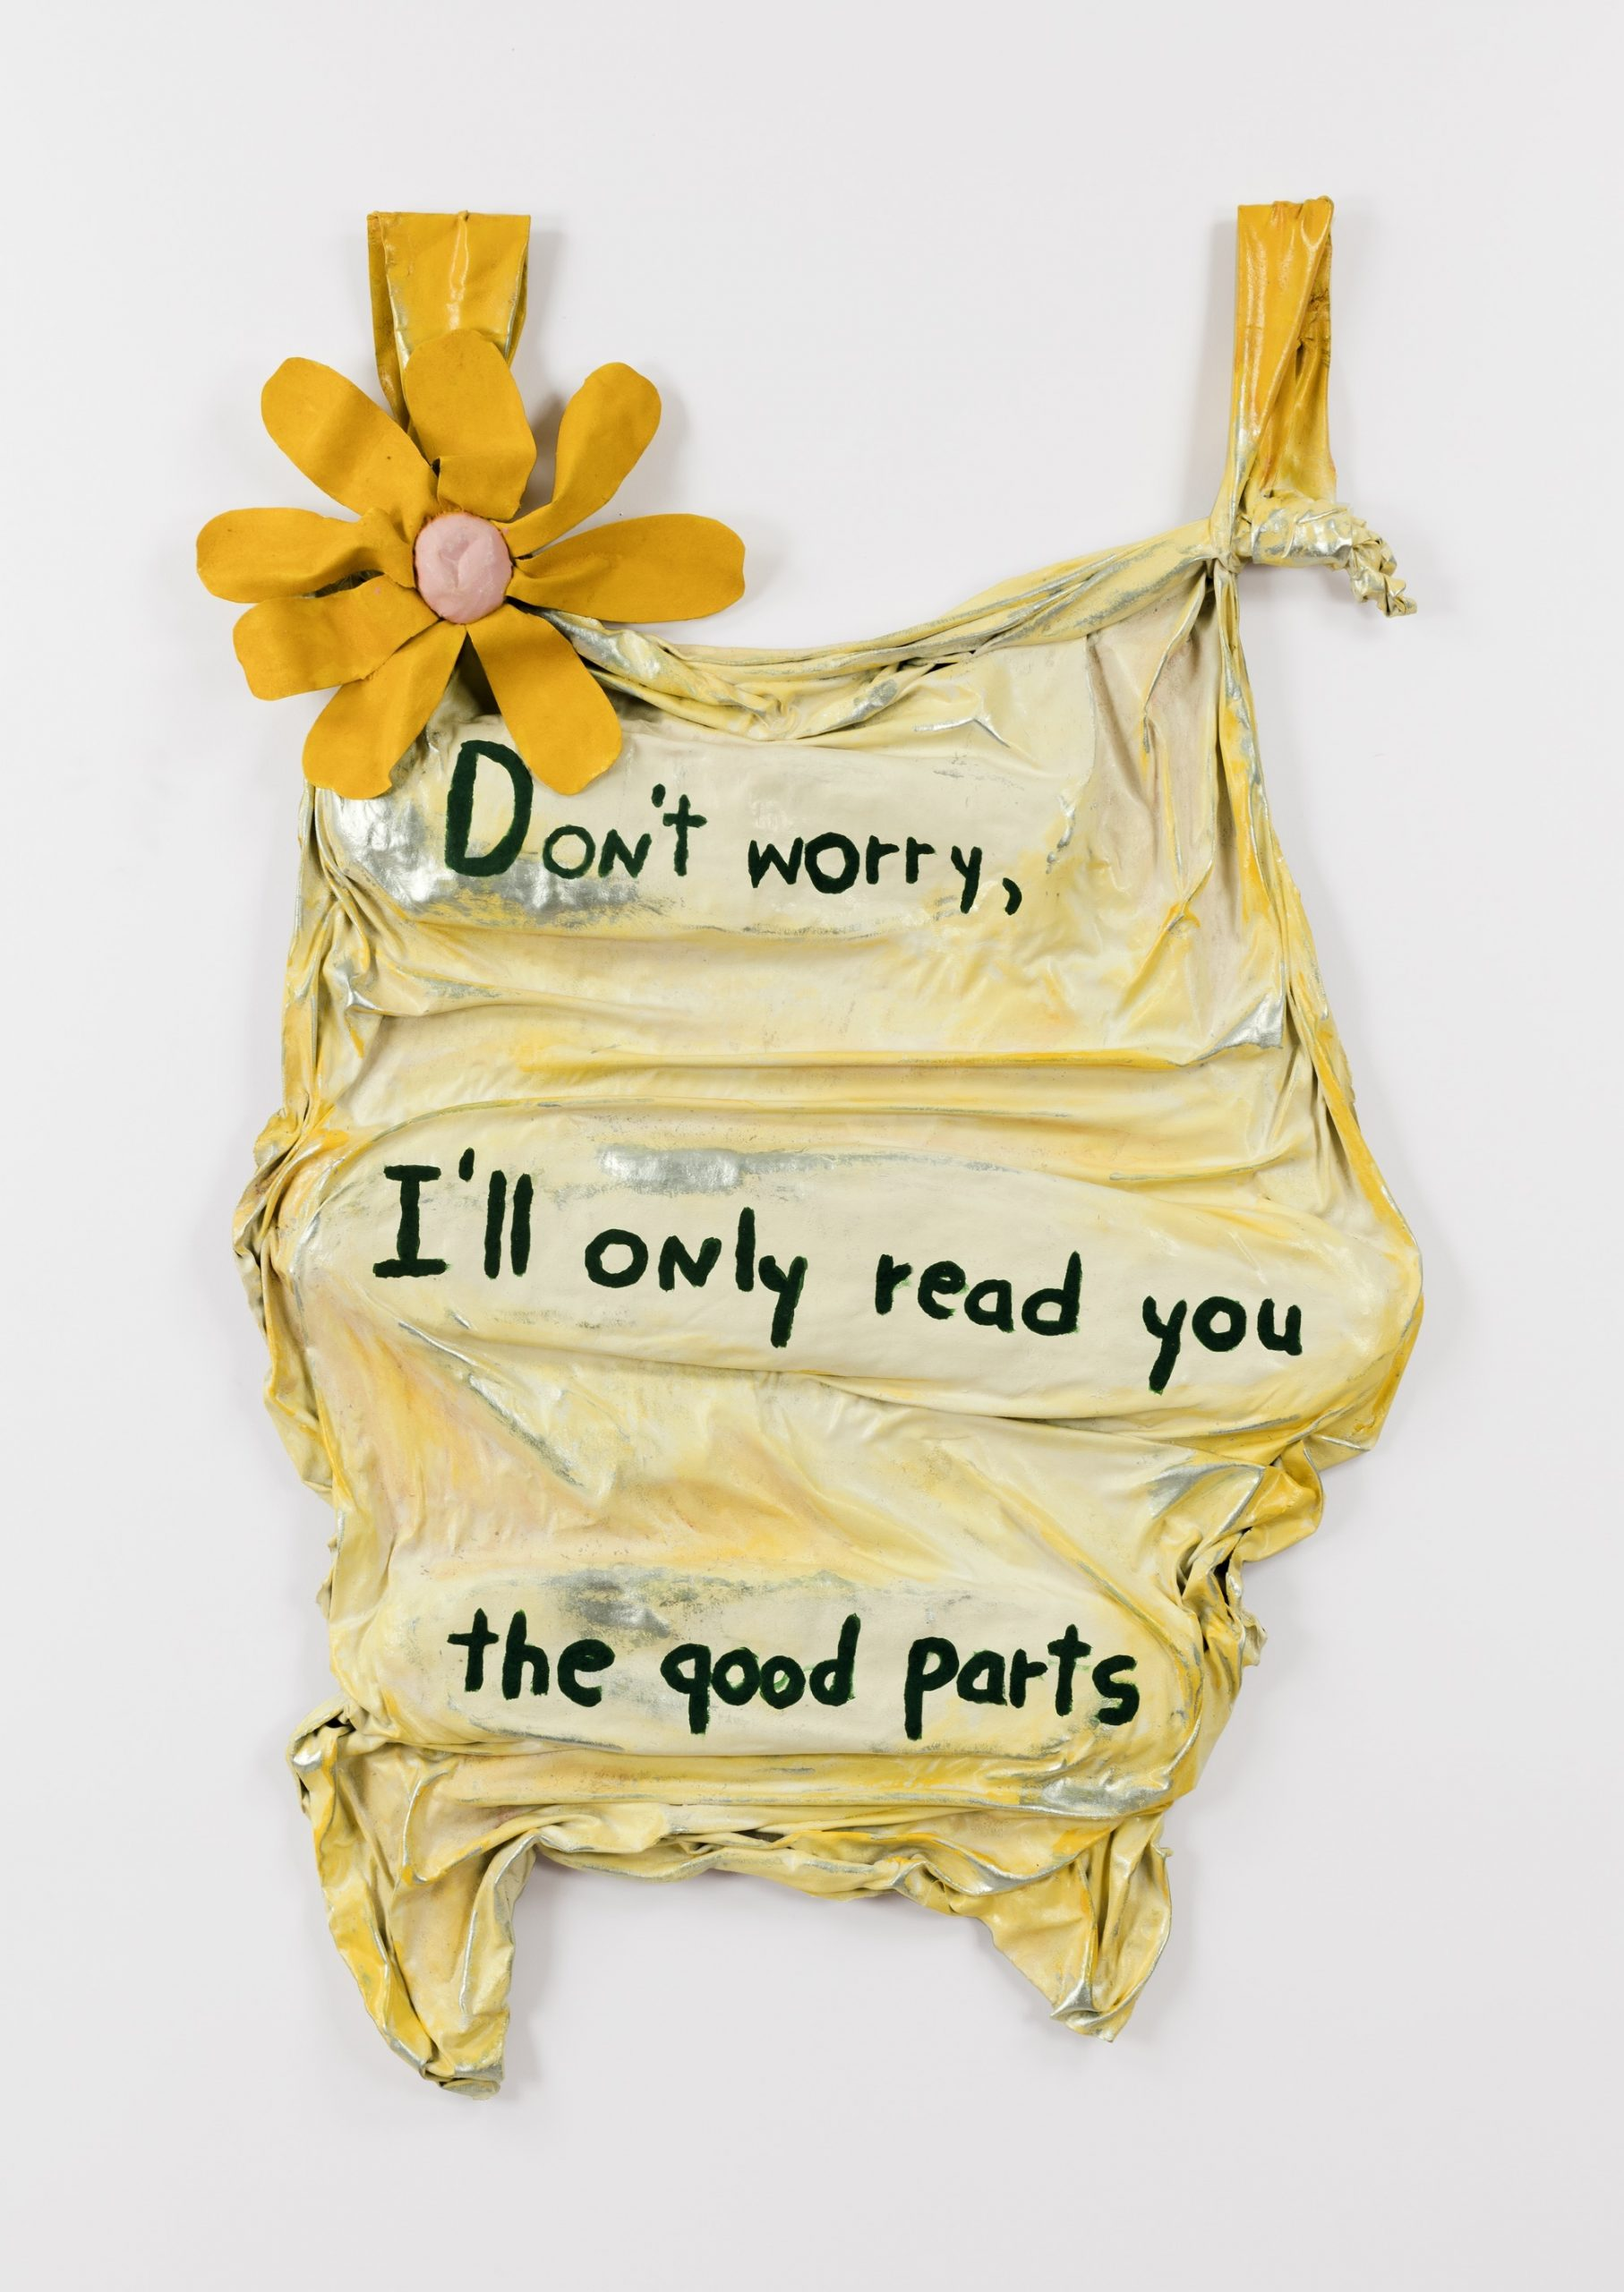 Ree Morton, Don't Worry, I'll Only Read You the Good Parts, 1975. Photo by Joerg Lohse © Estate of Ree Morton, courtesy of Alexander and Bonin, New York